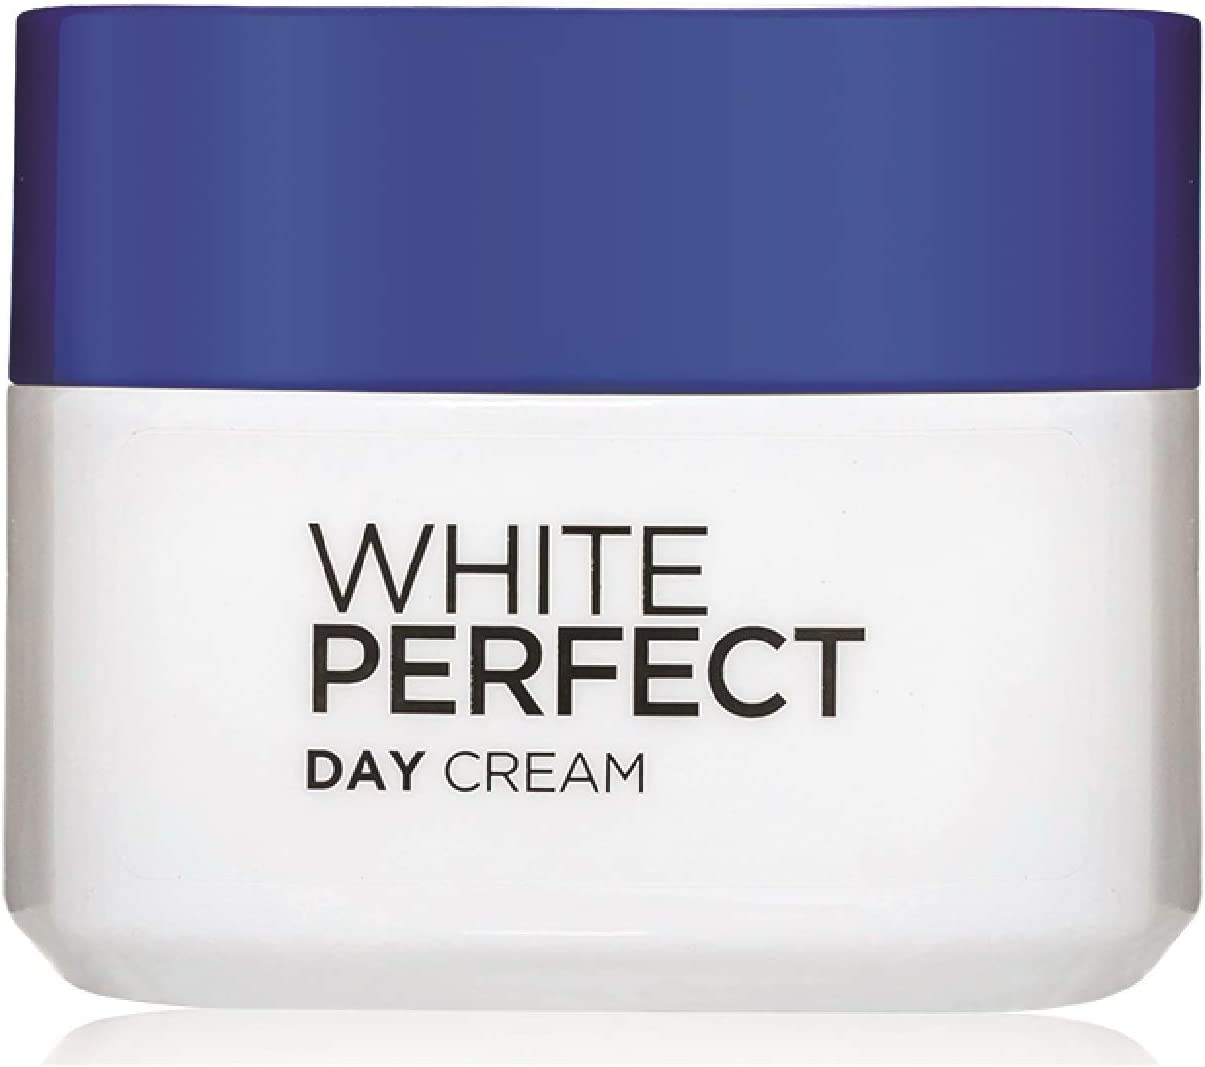 L'oreal - White perfect fairness control day, crema hidratante de día, 50 ml